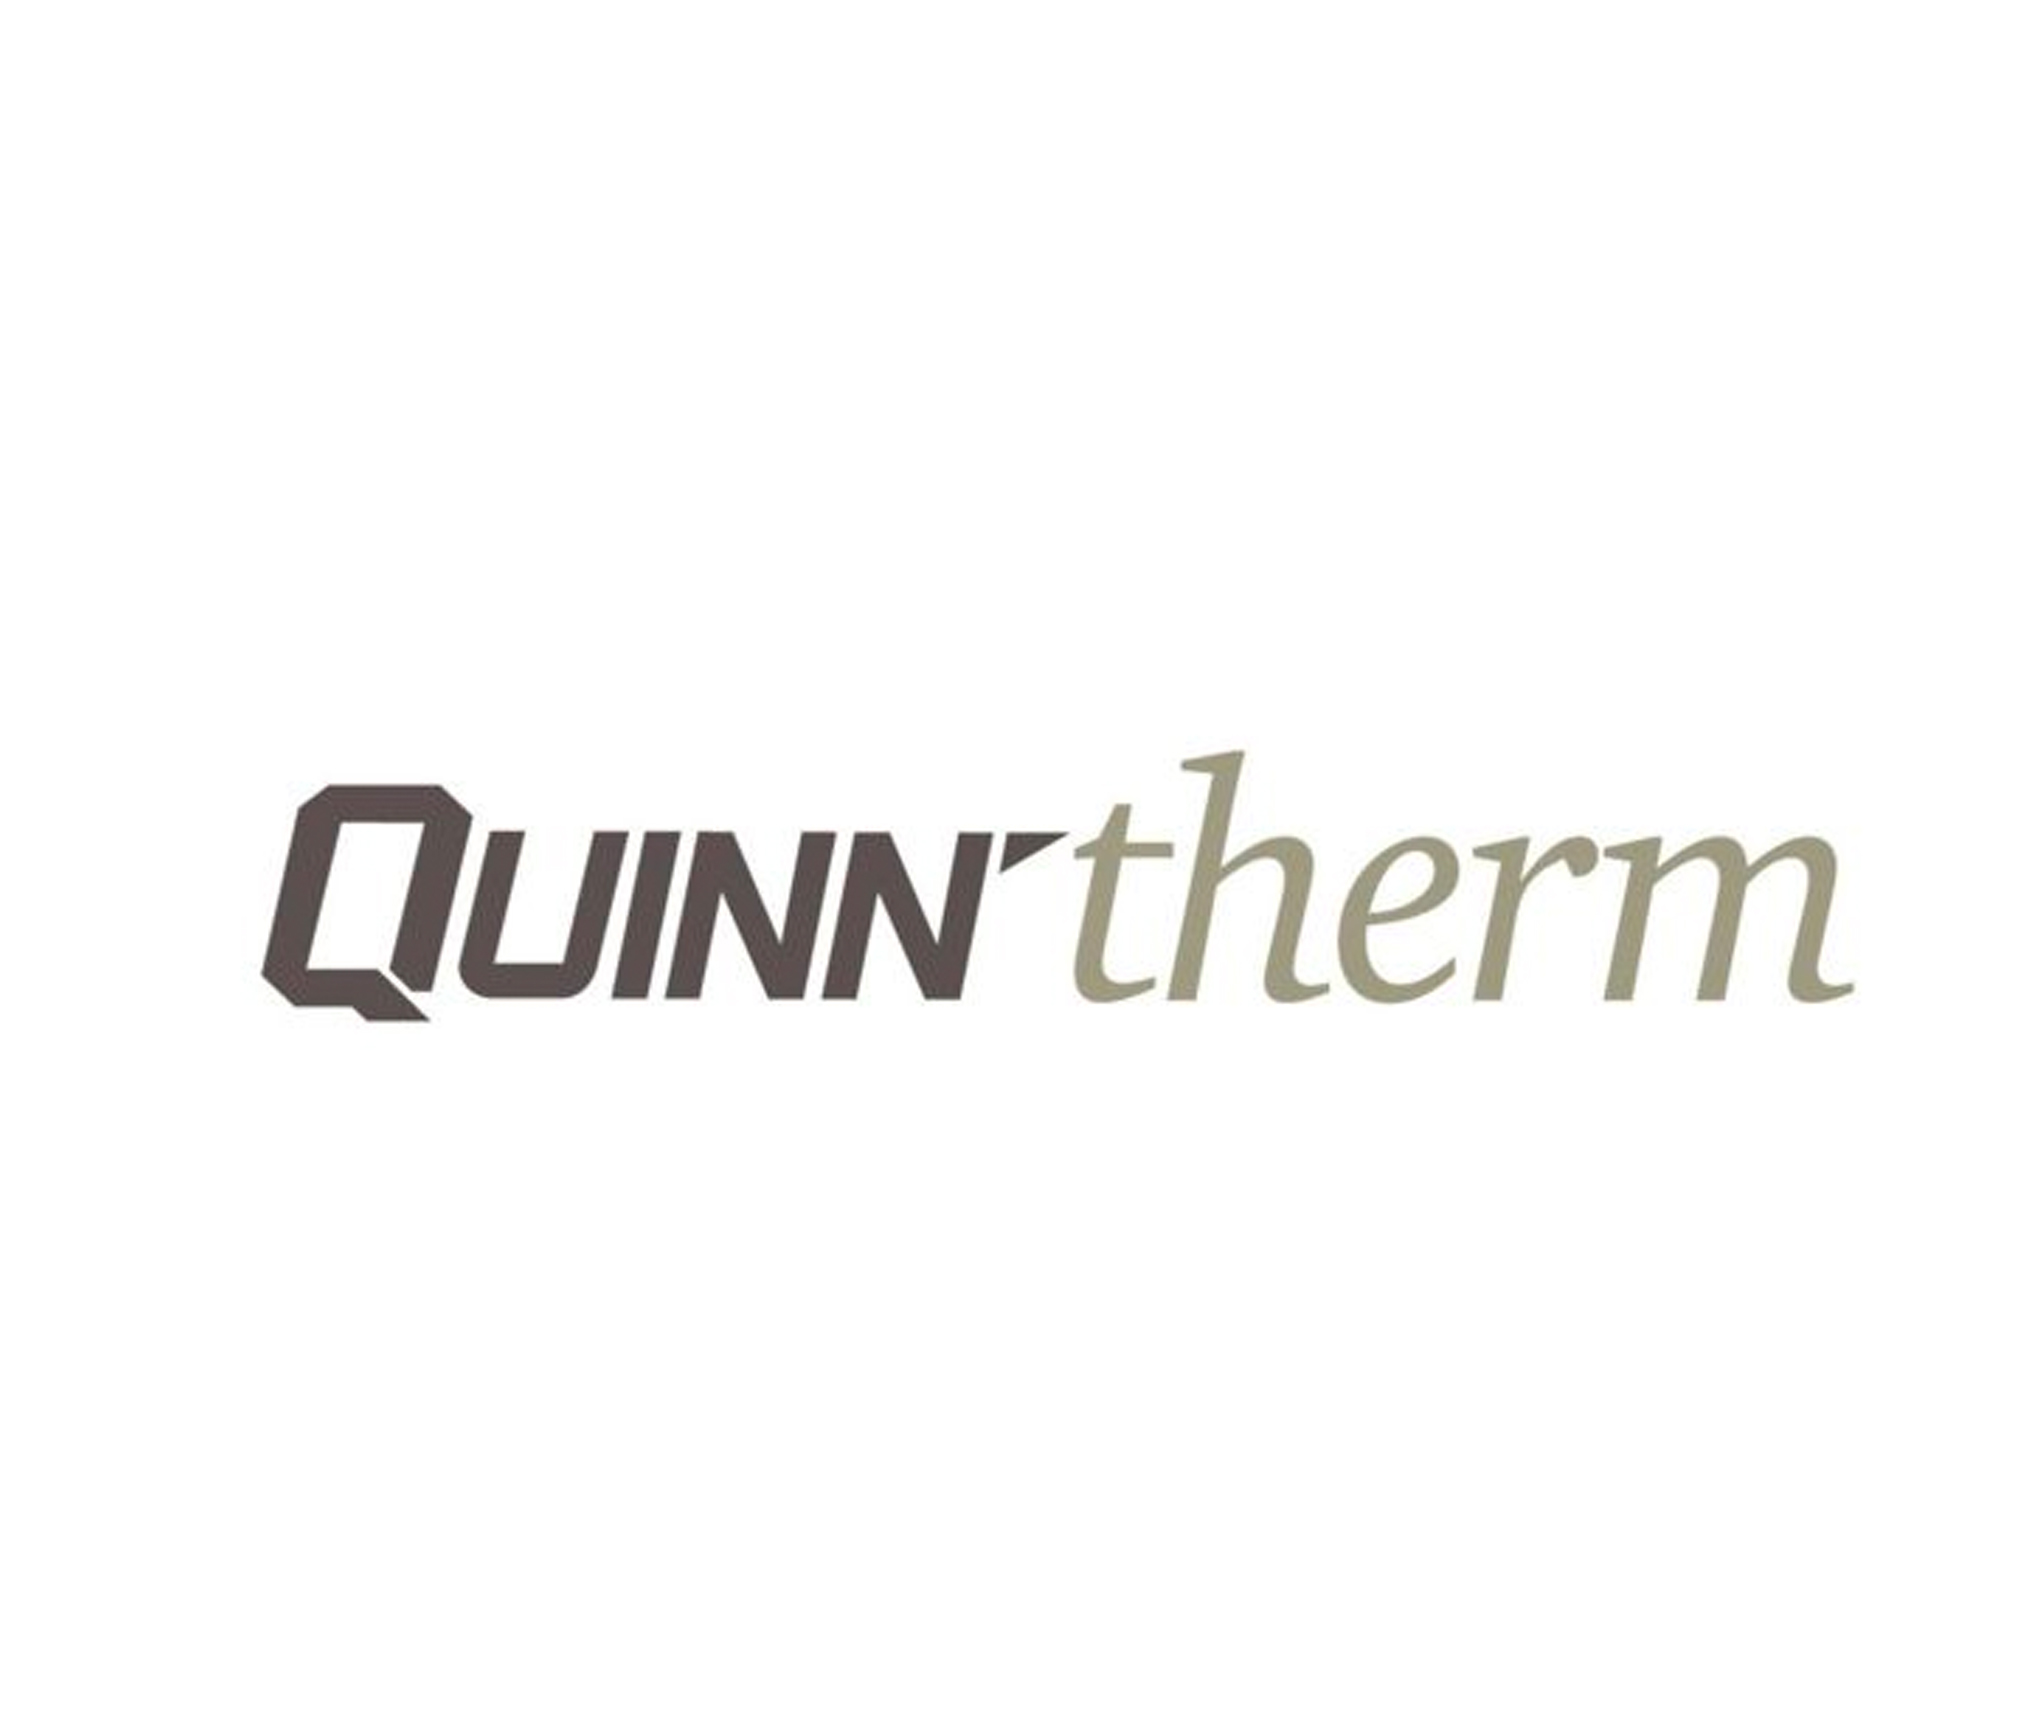 Quinntherm Insultation Supplies Logo